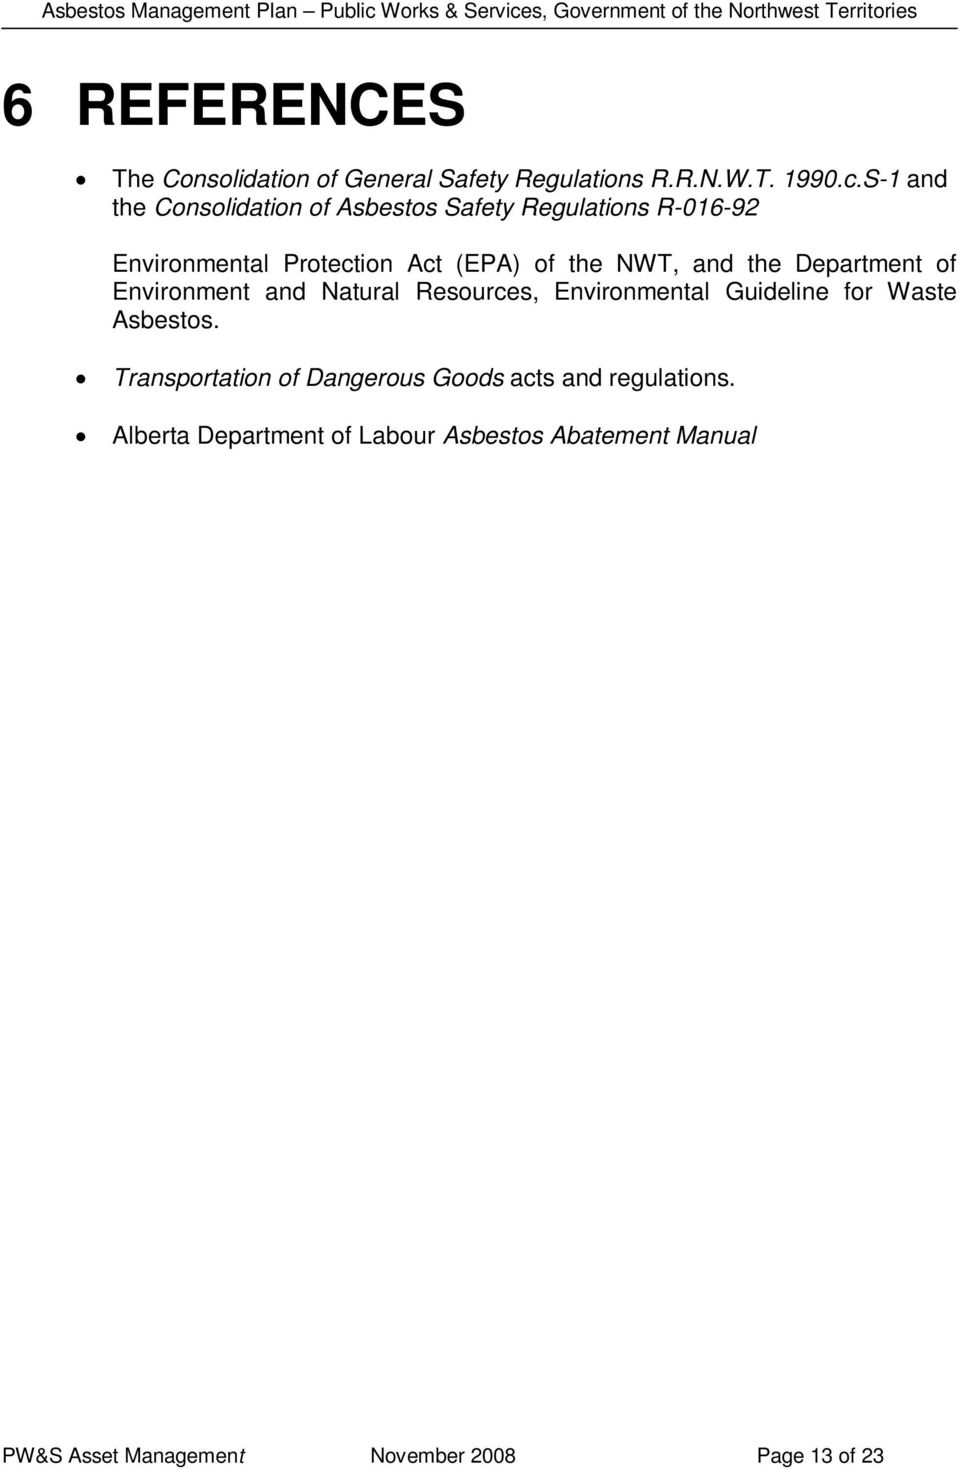 and the Department of Environment and Natural Resources, Environmental Guideline for Waste Asbestos.